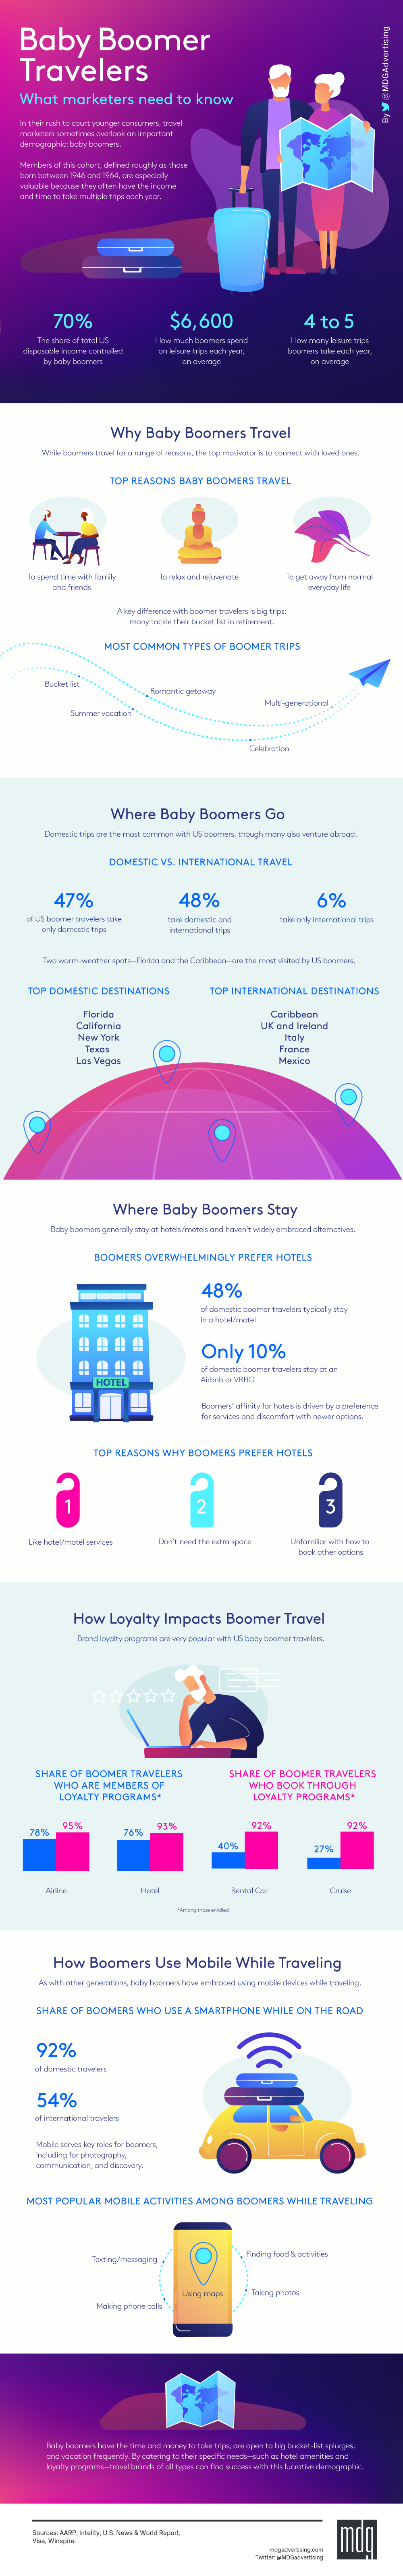 Baby Boomer Travelers: What Marketers Need to Know [Infographic]